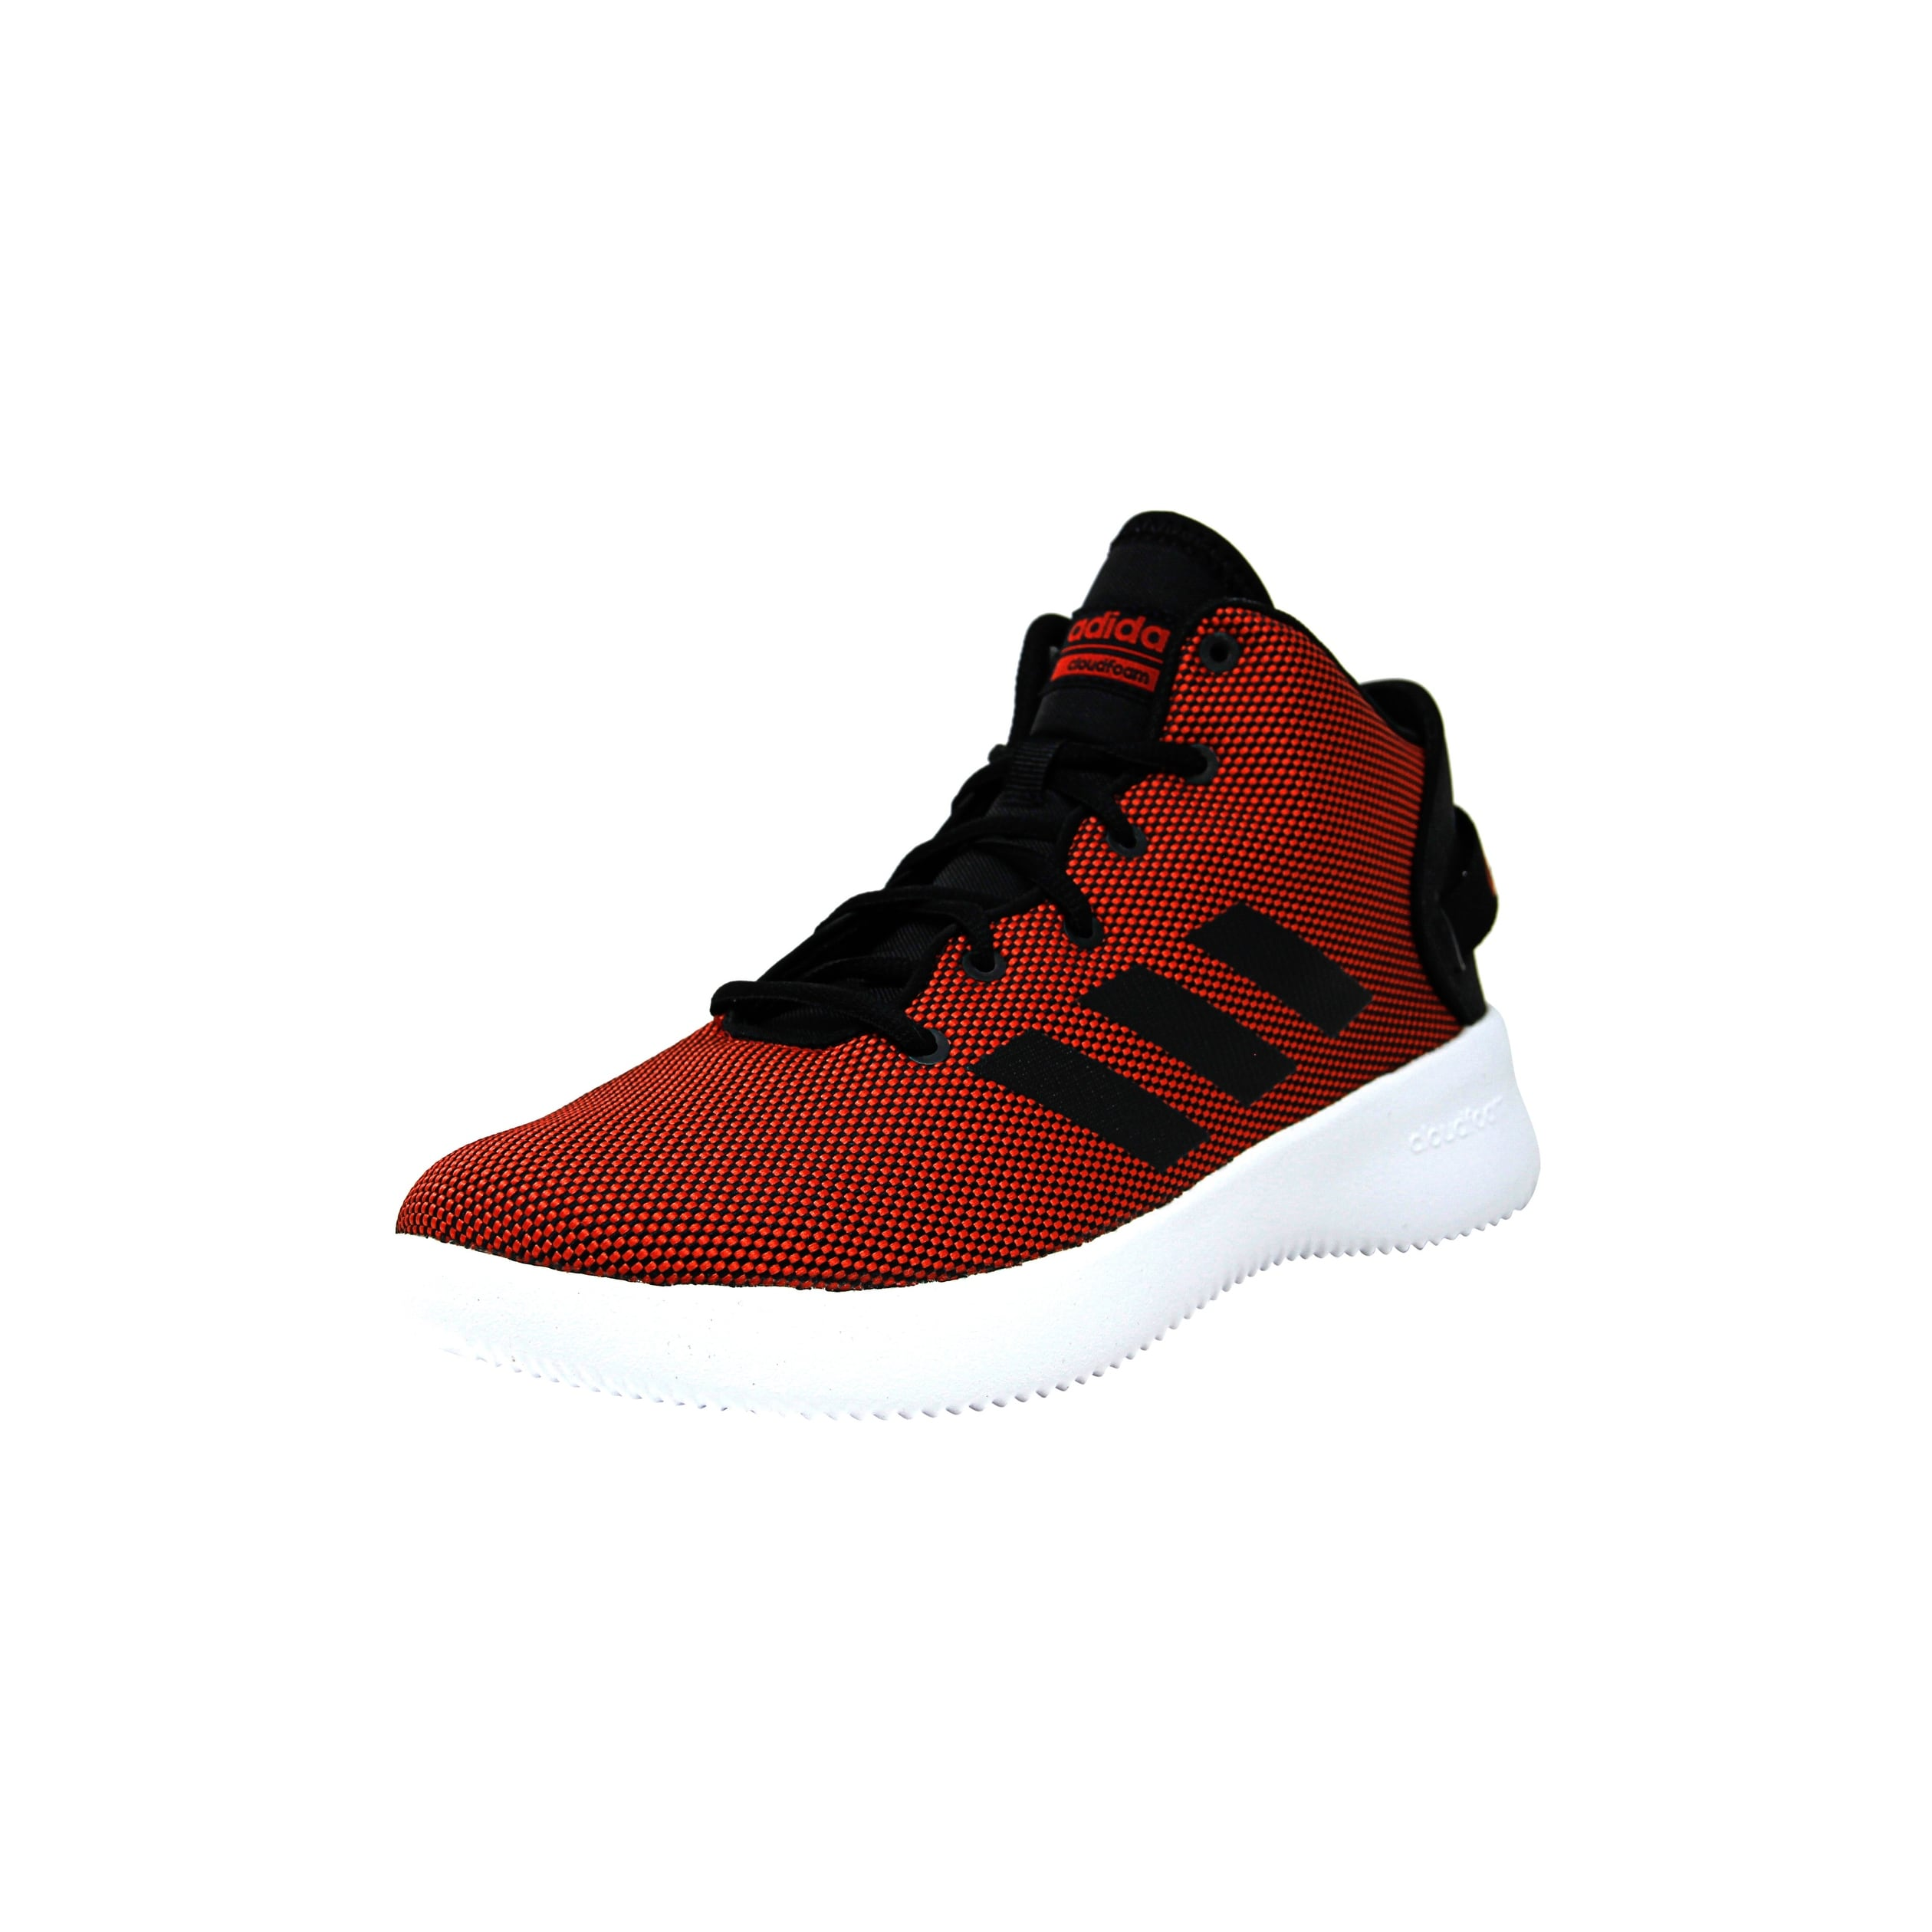 Adidas Men's Cf Refresh Mid Ankle-High